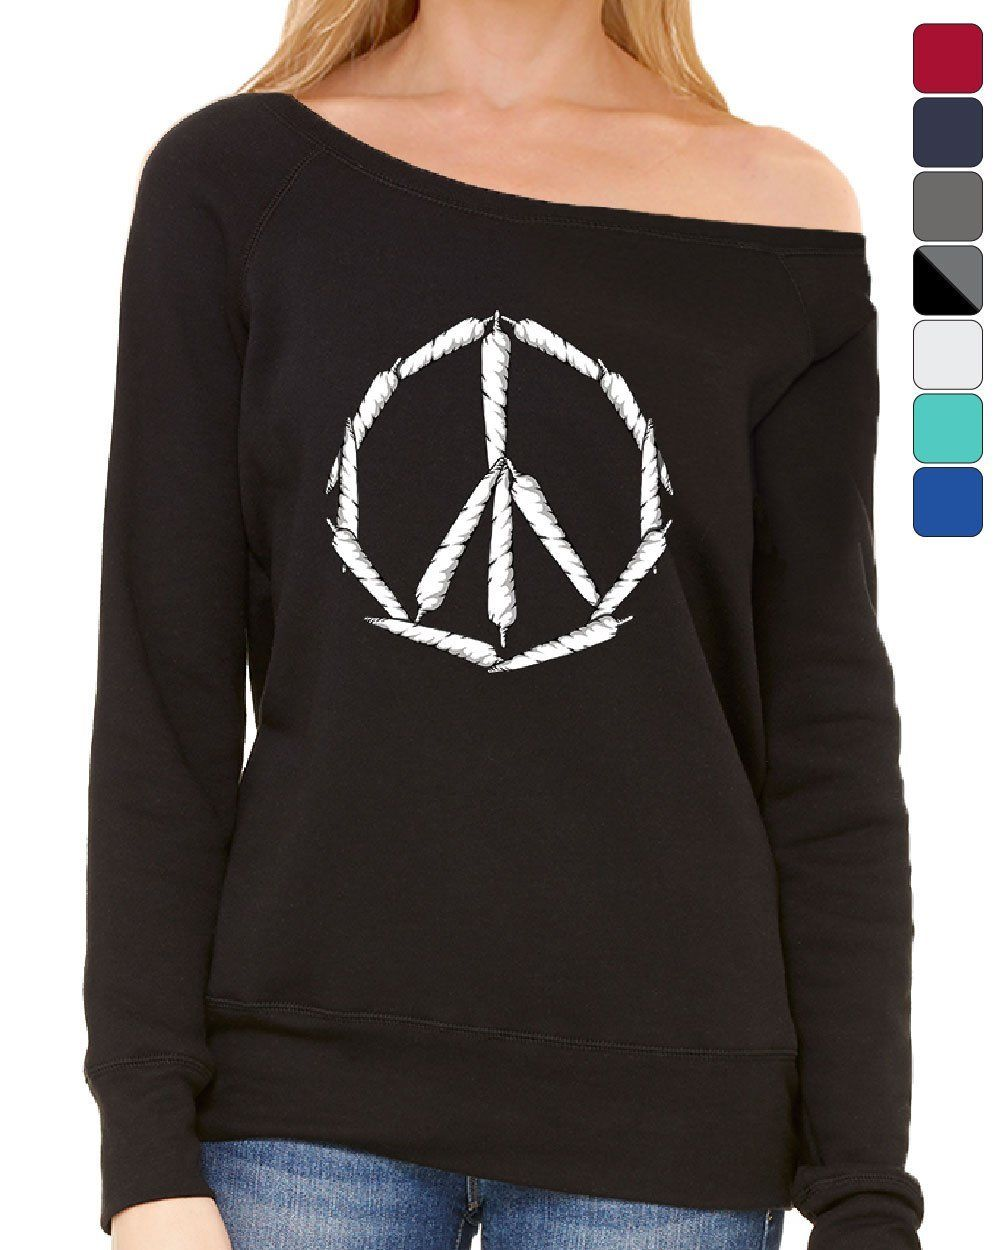 Peace Indicator Weed Joints Women's Sweatshirt Cigarette smoking 420 Hippie Pot Cannabis 2